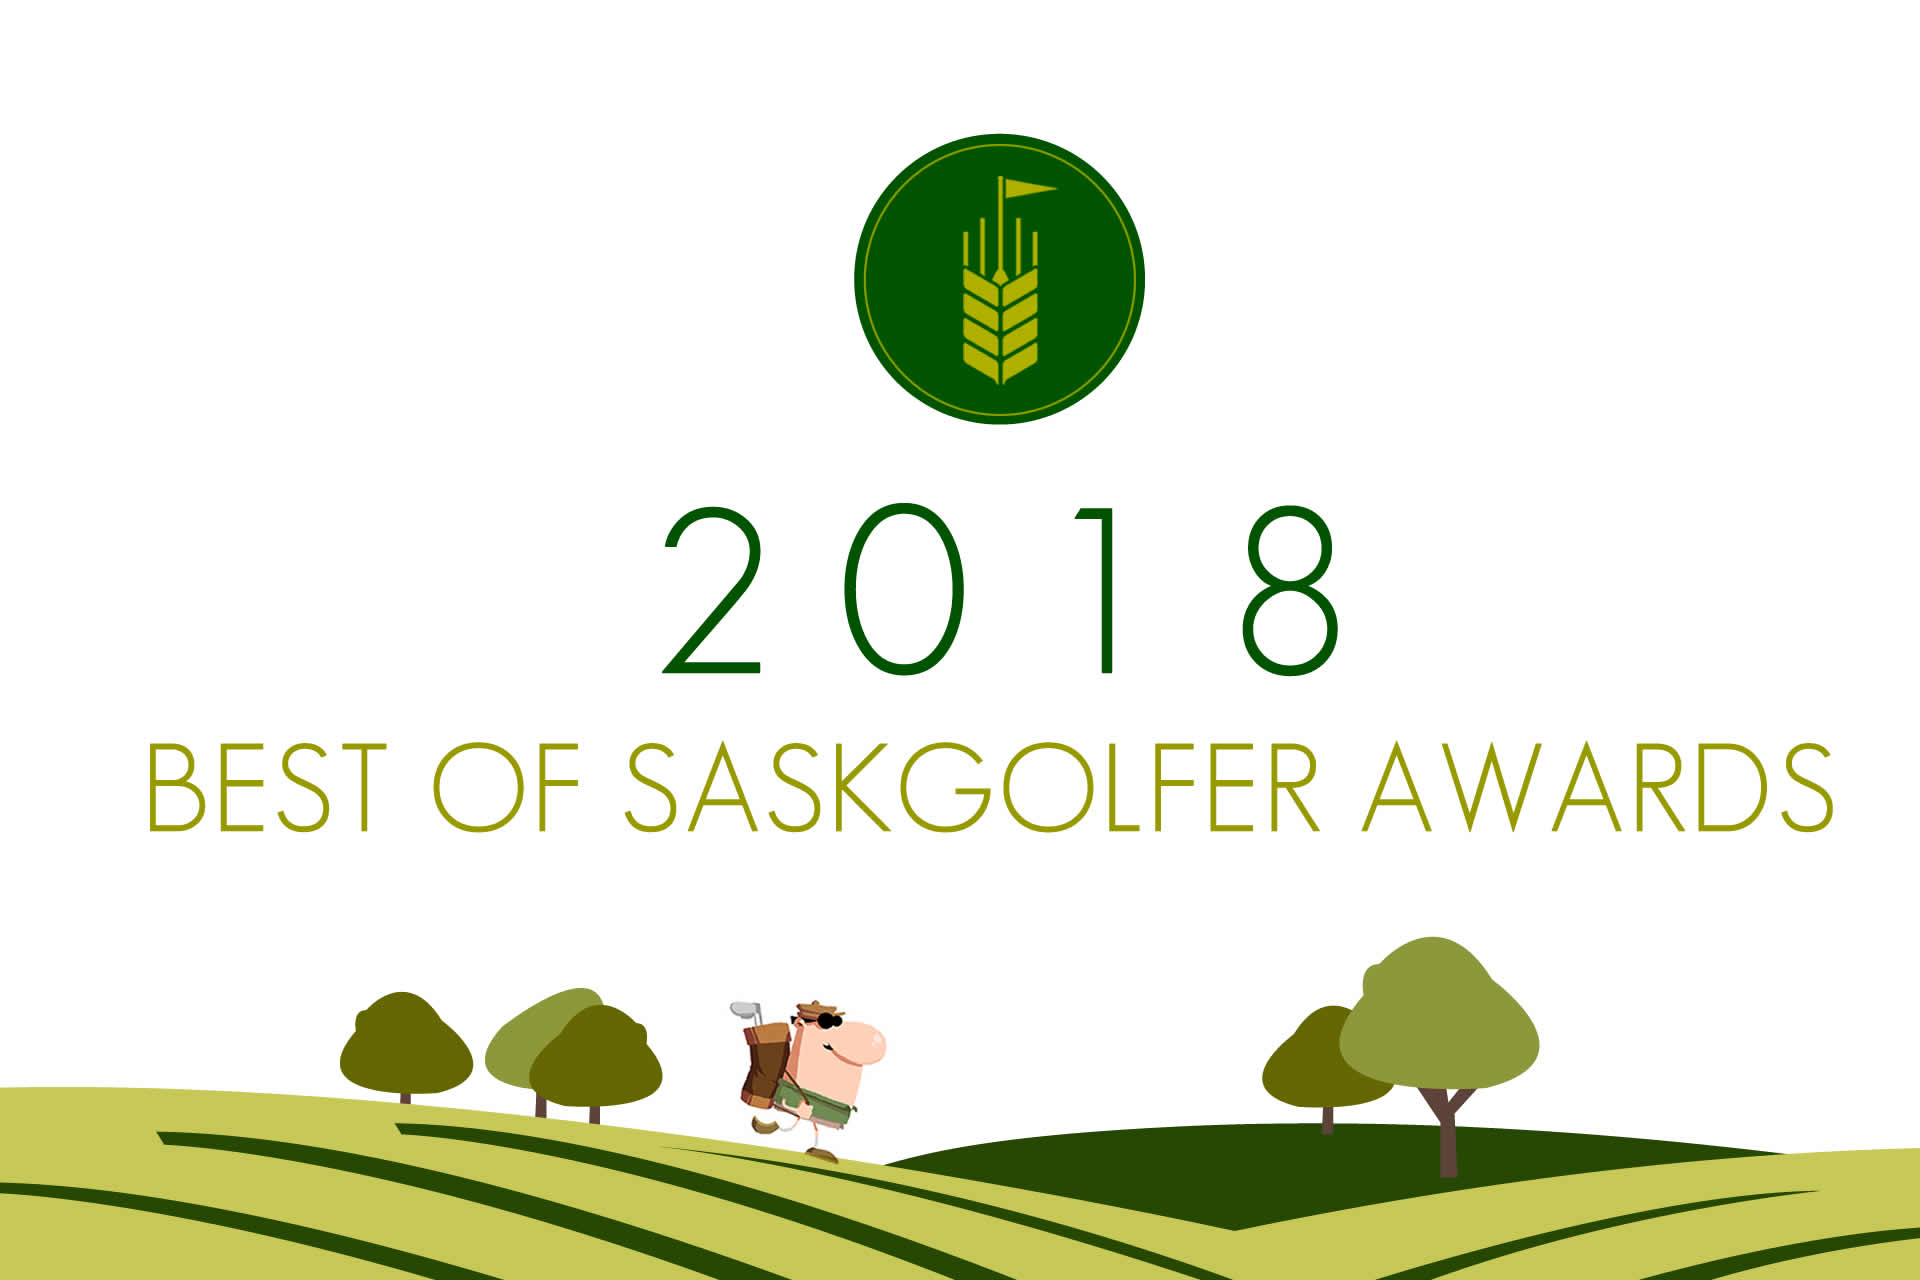 Best of SaskGolfer 2018